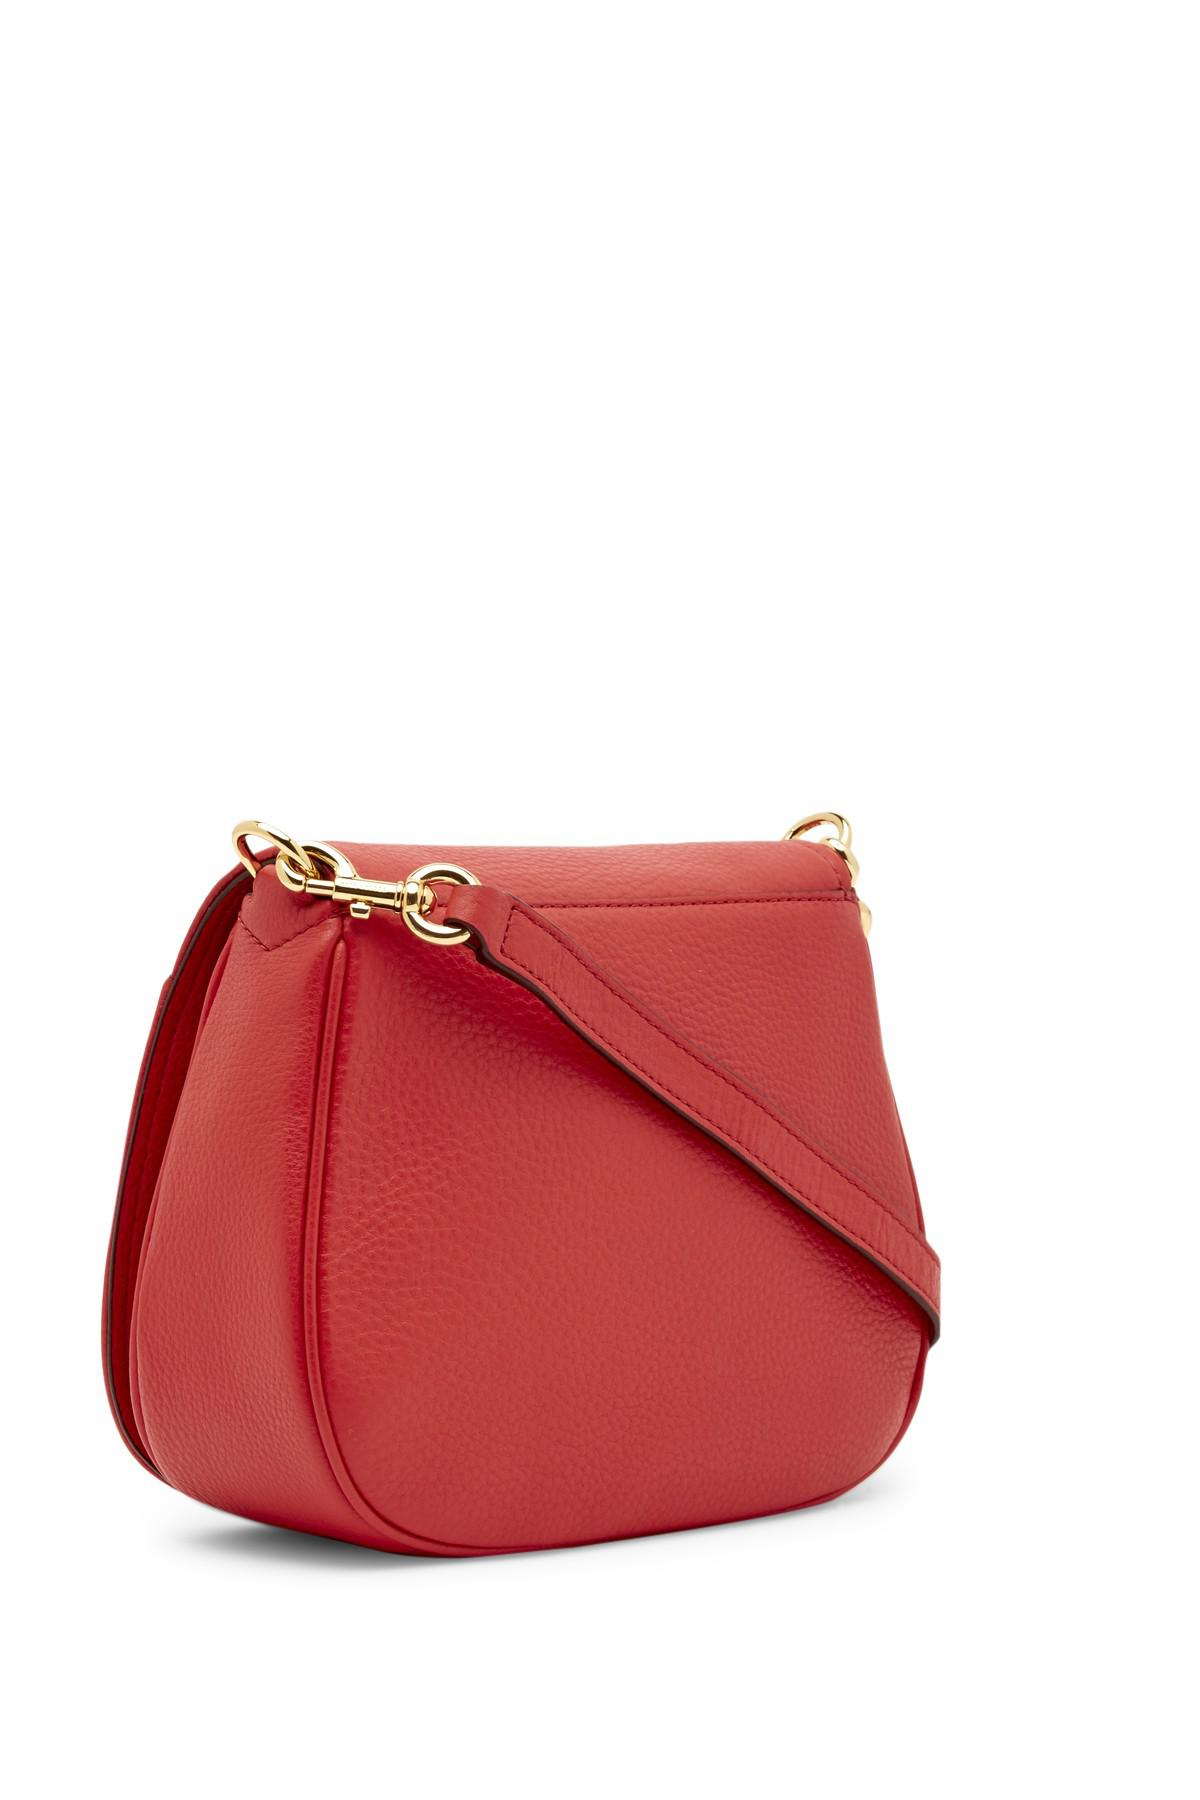 112b4a36cb1e Gallery. Previously sold at  Nordstrom Rack · Women s Leather Messenger Bags  ...